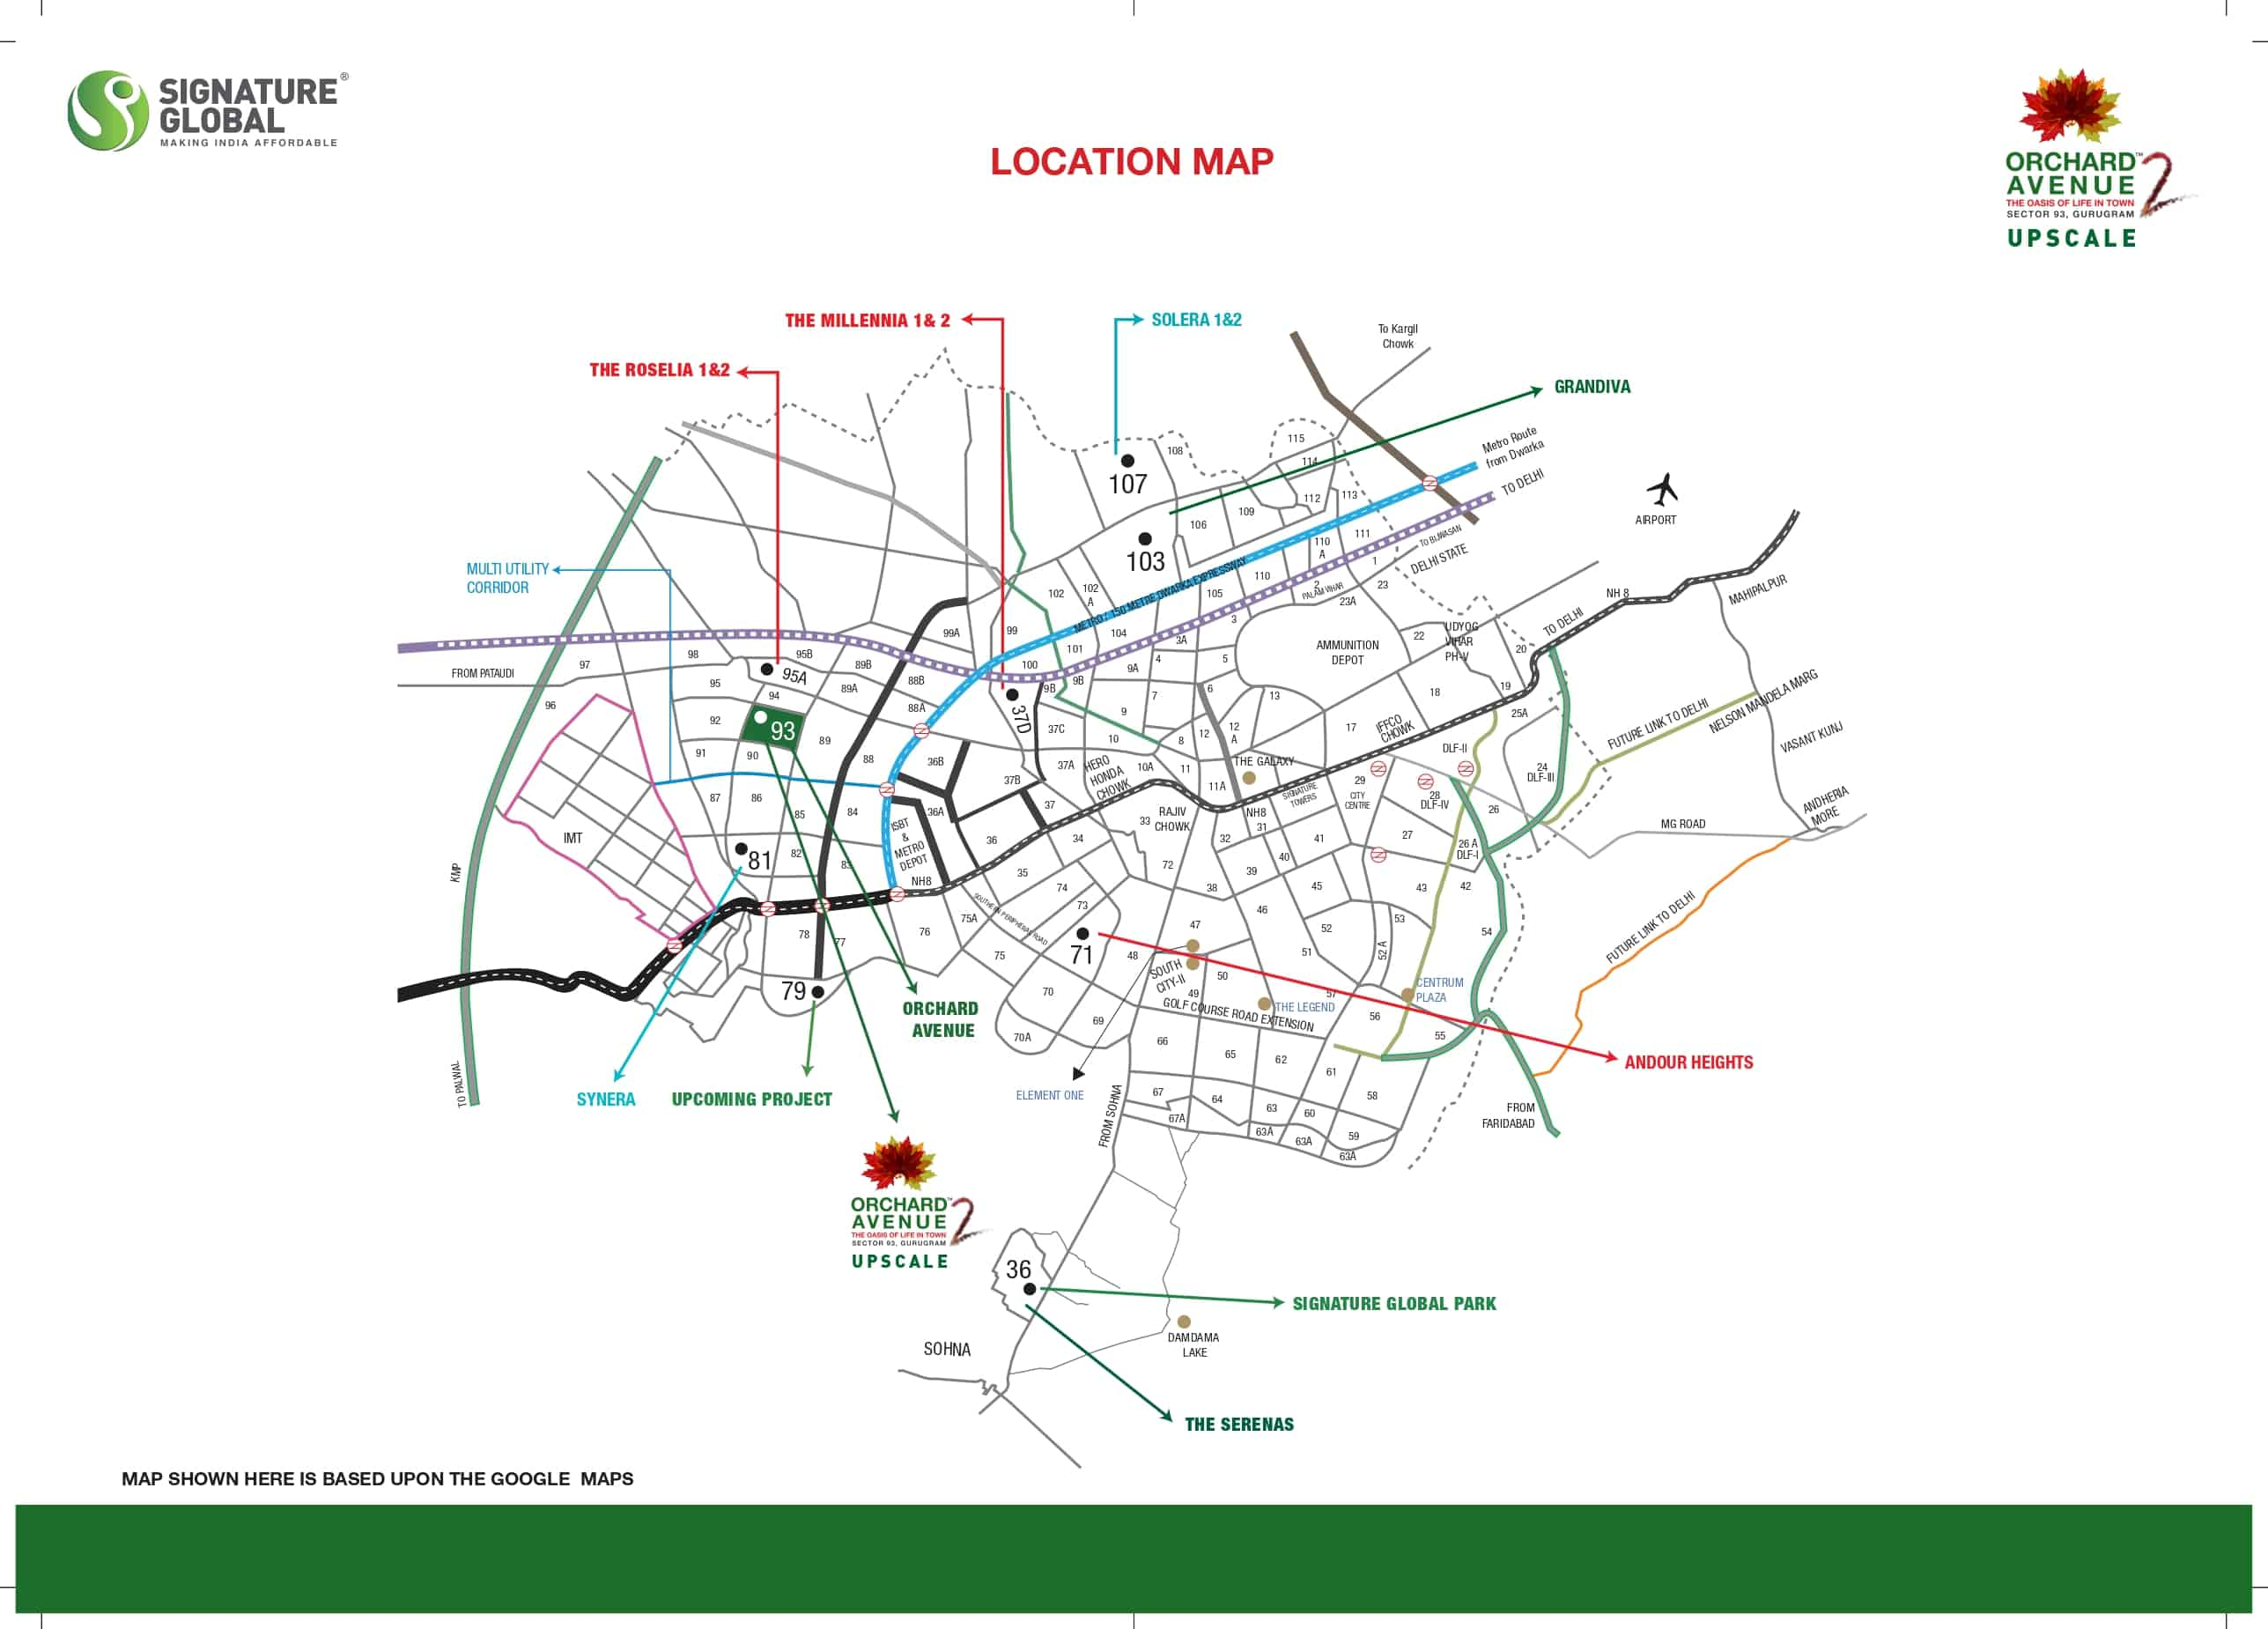 Location Map Orchard avenue 2